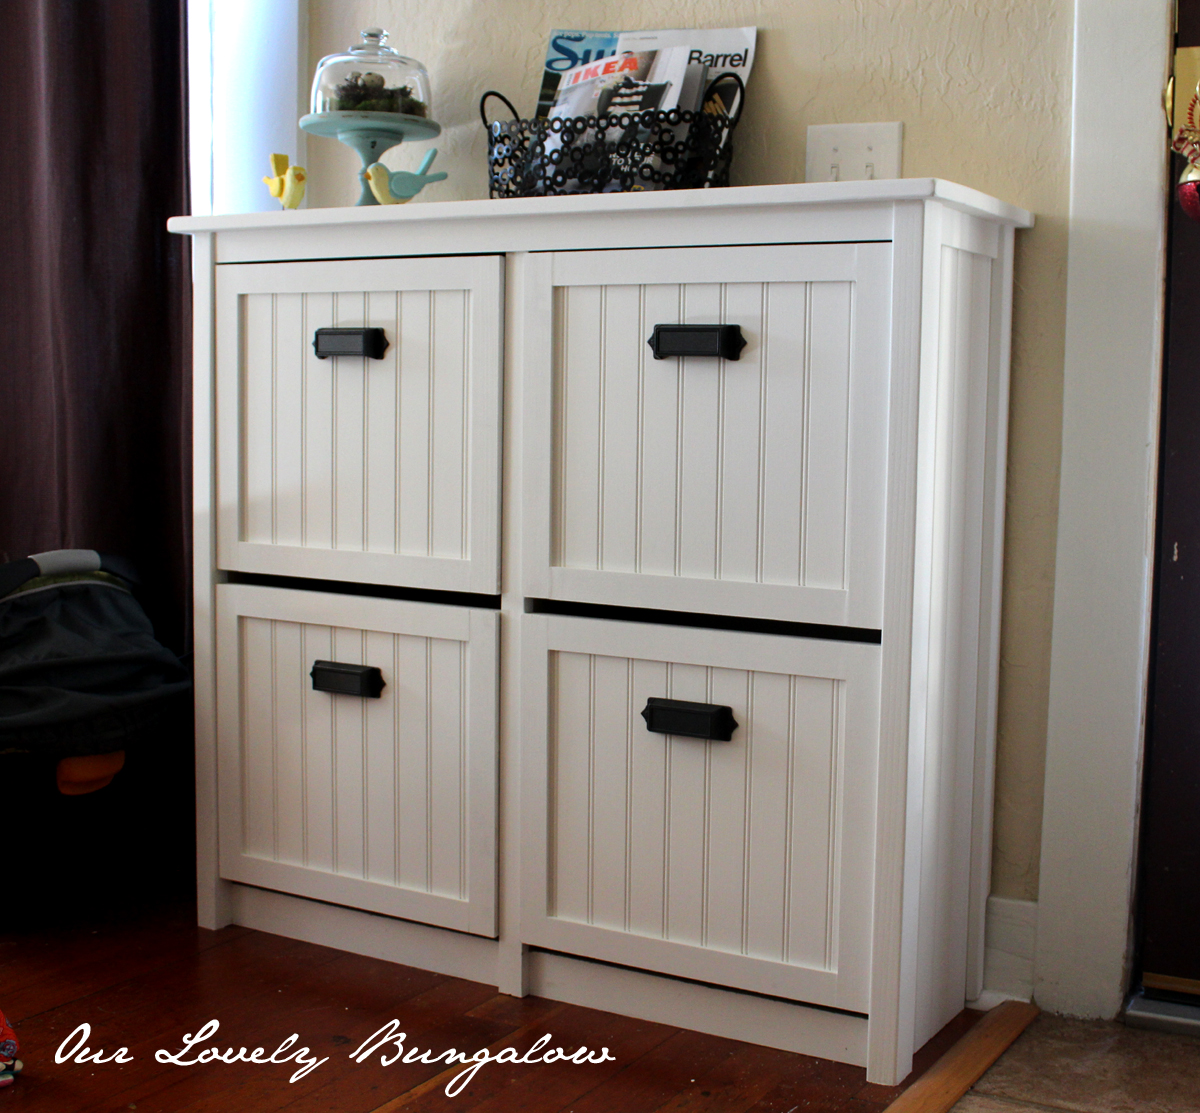 revamping an ikea shoe cabinet. Black Bedroom Furniture Sets. Home Design Ideas